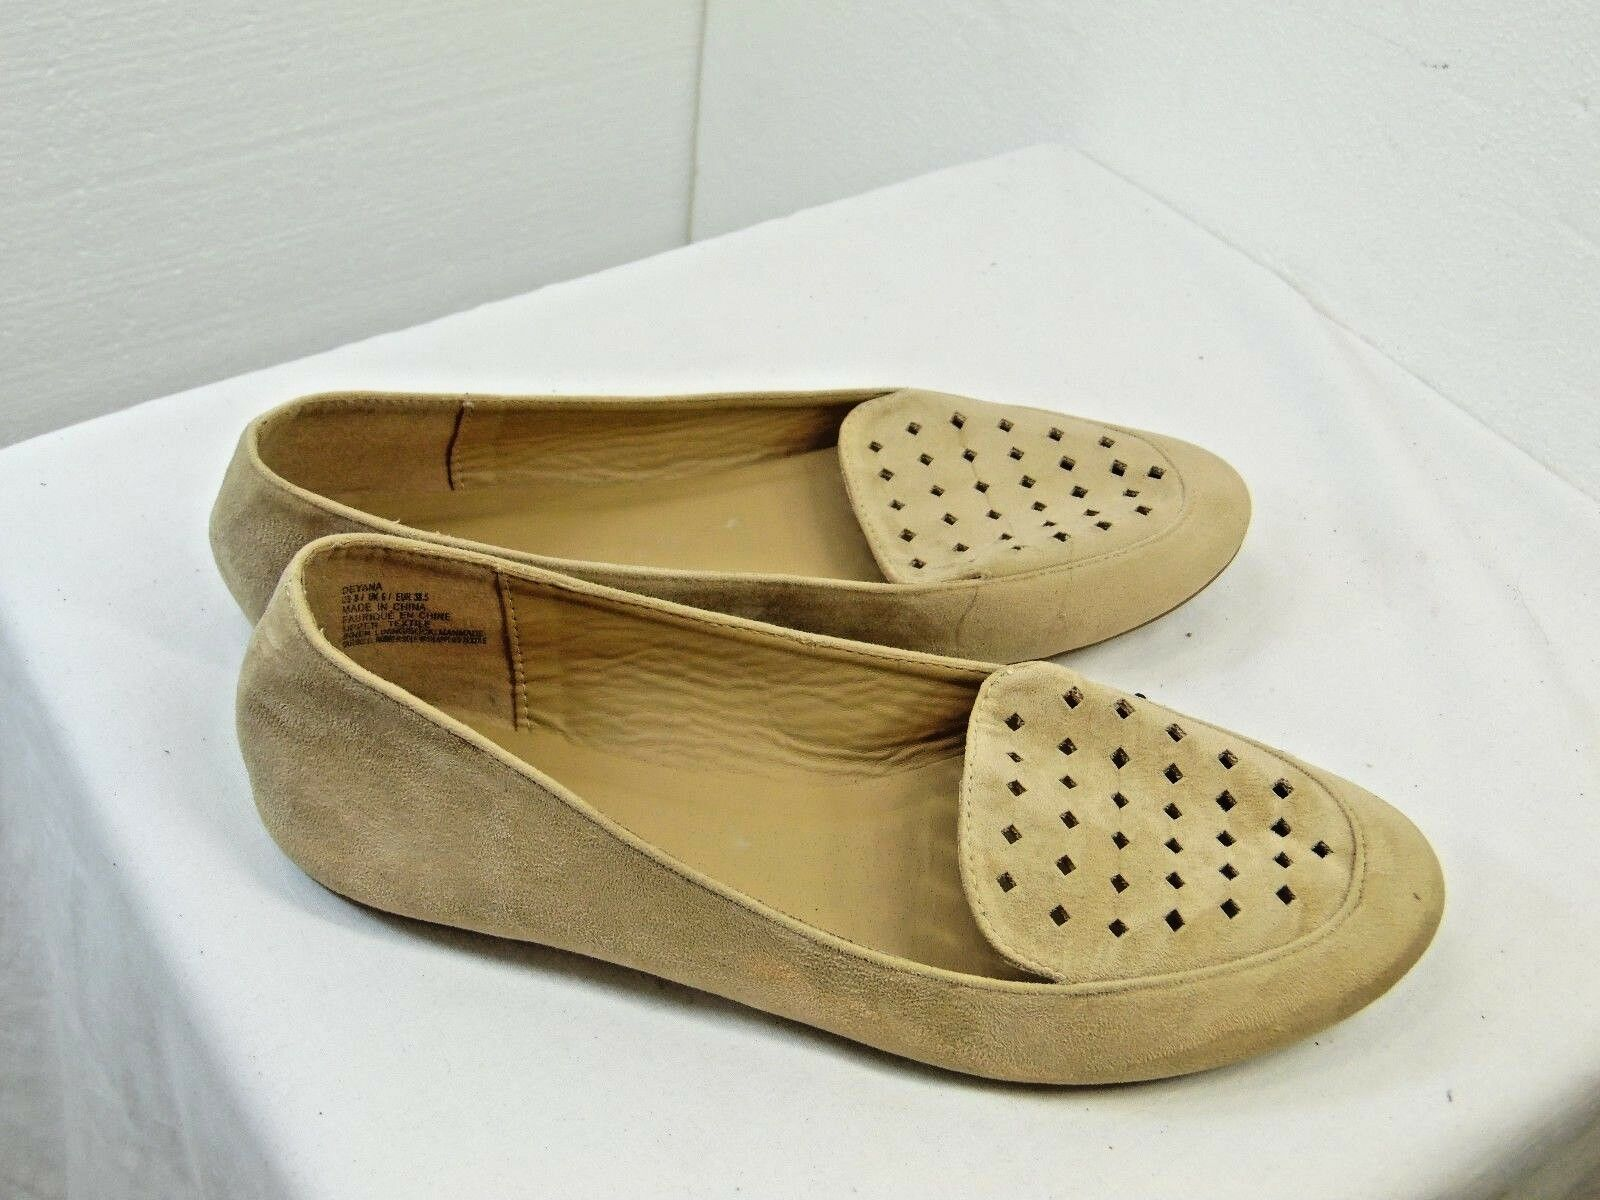 WOMENS SLIP ON FLATS SIZE 8 JUST FAB BRAND LIGHT TAN SUEDE DEYANA STYLE  ZB13